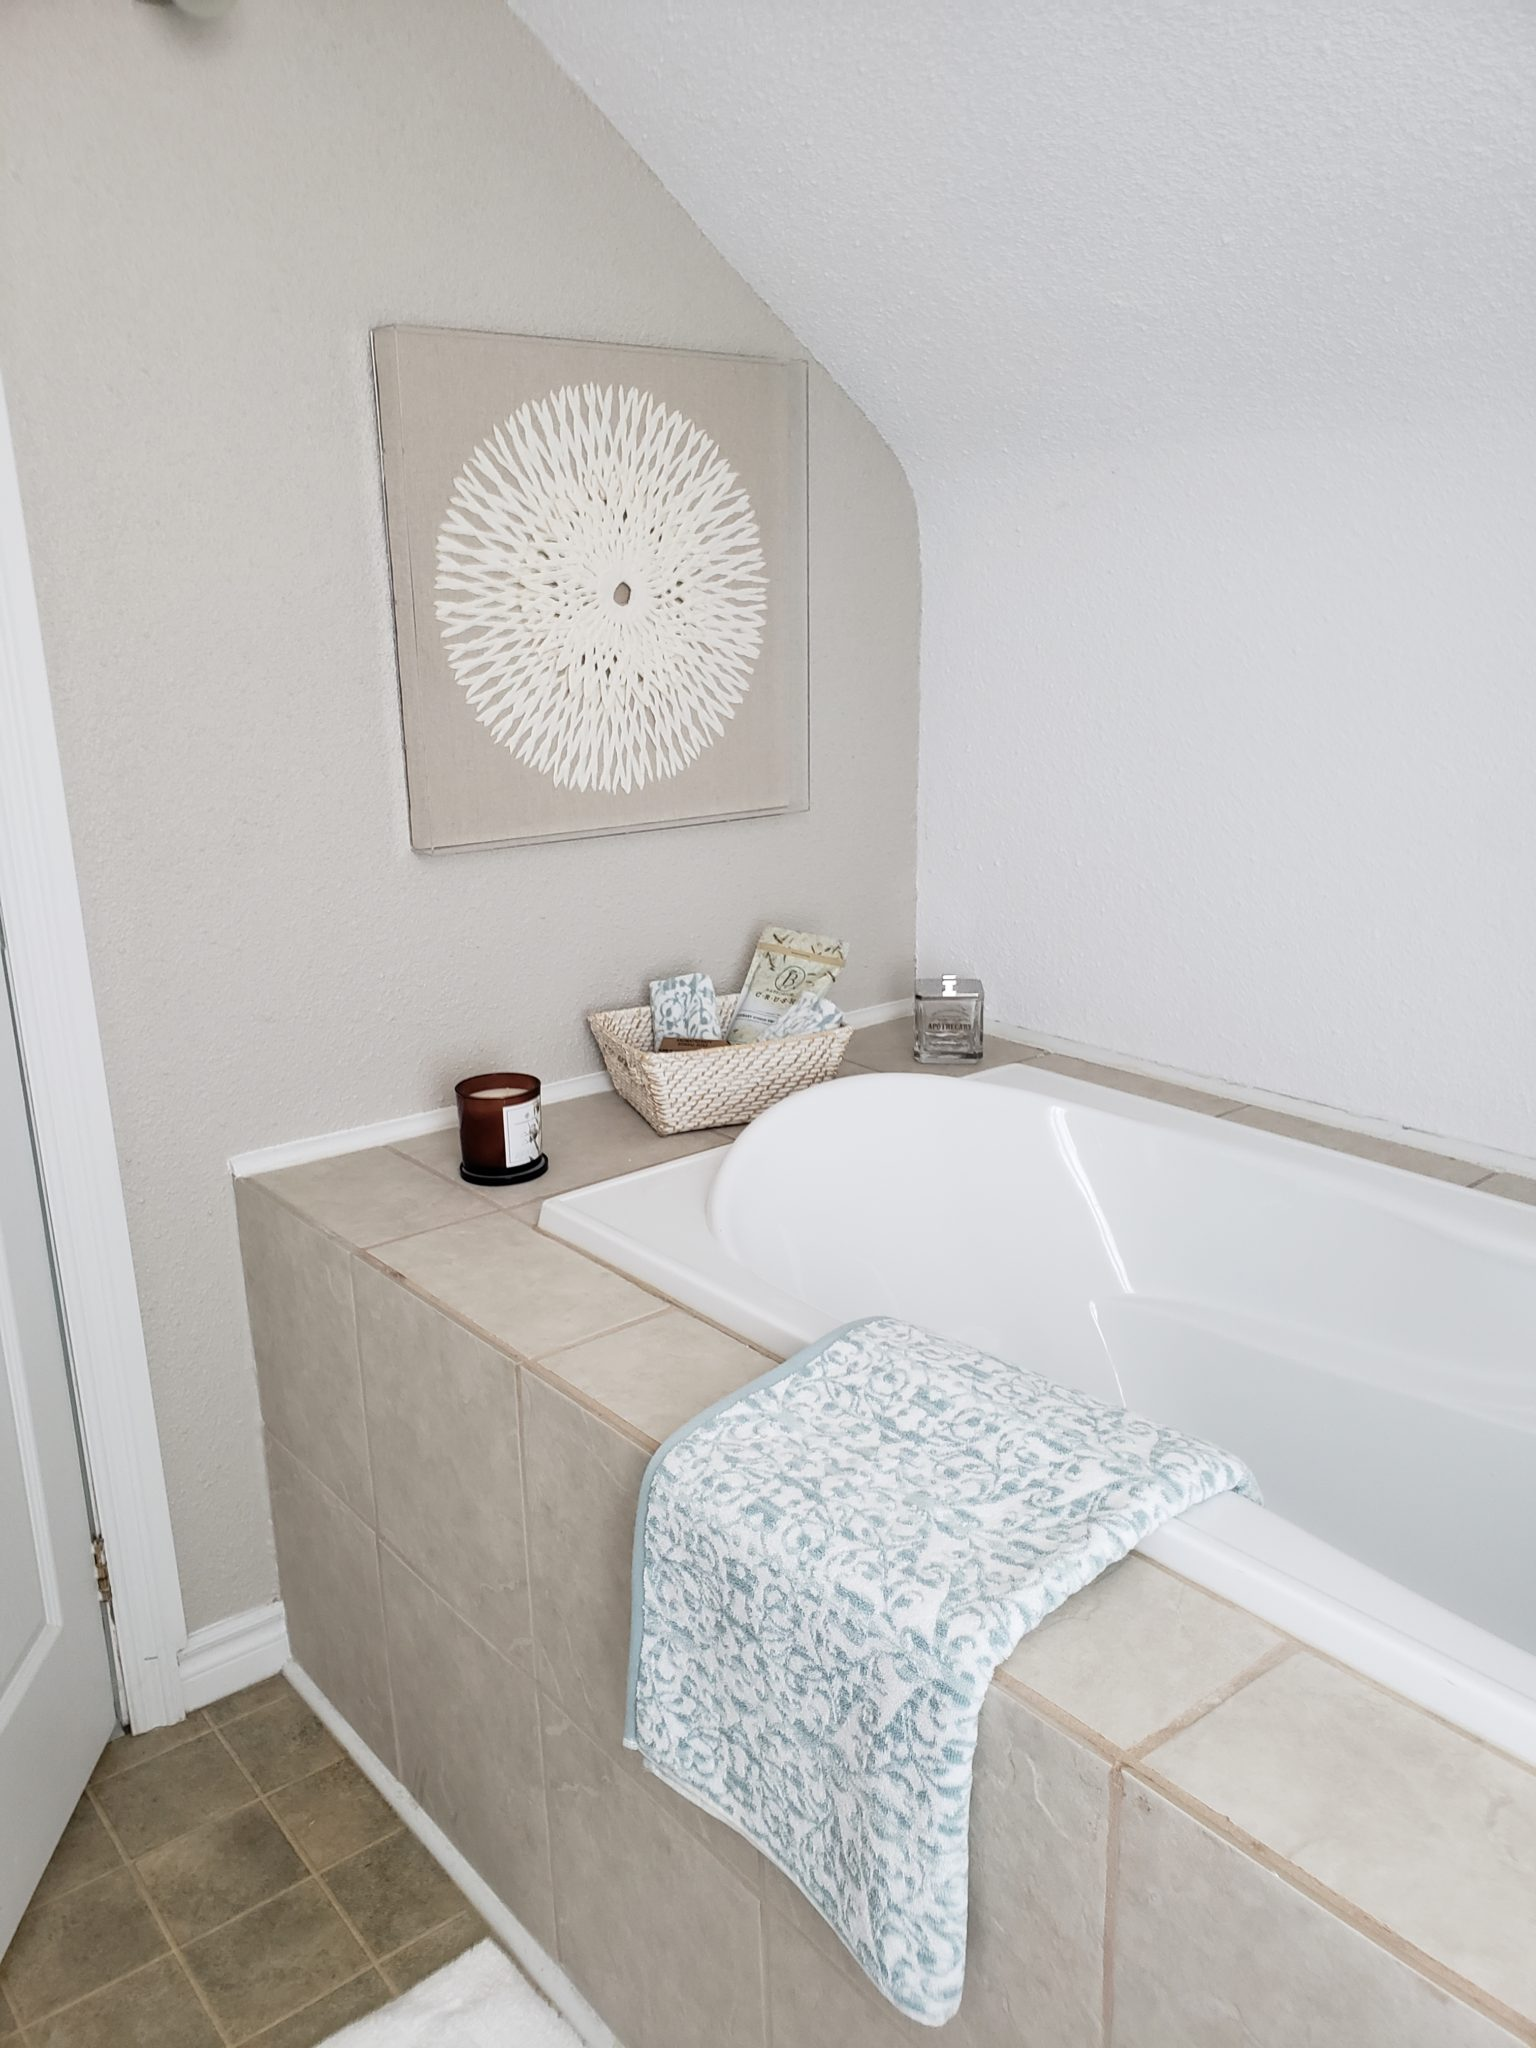 Bath area back - After